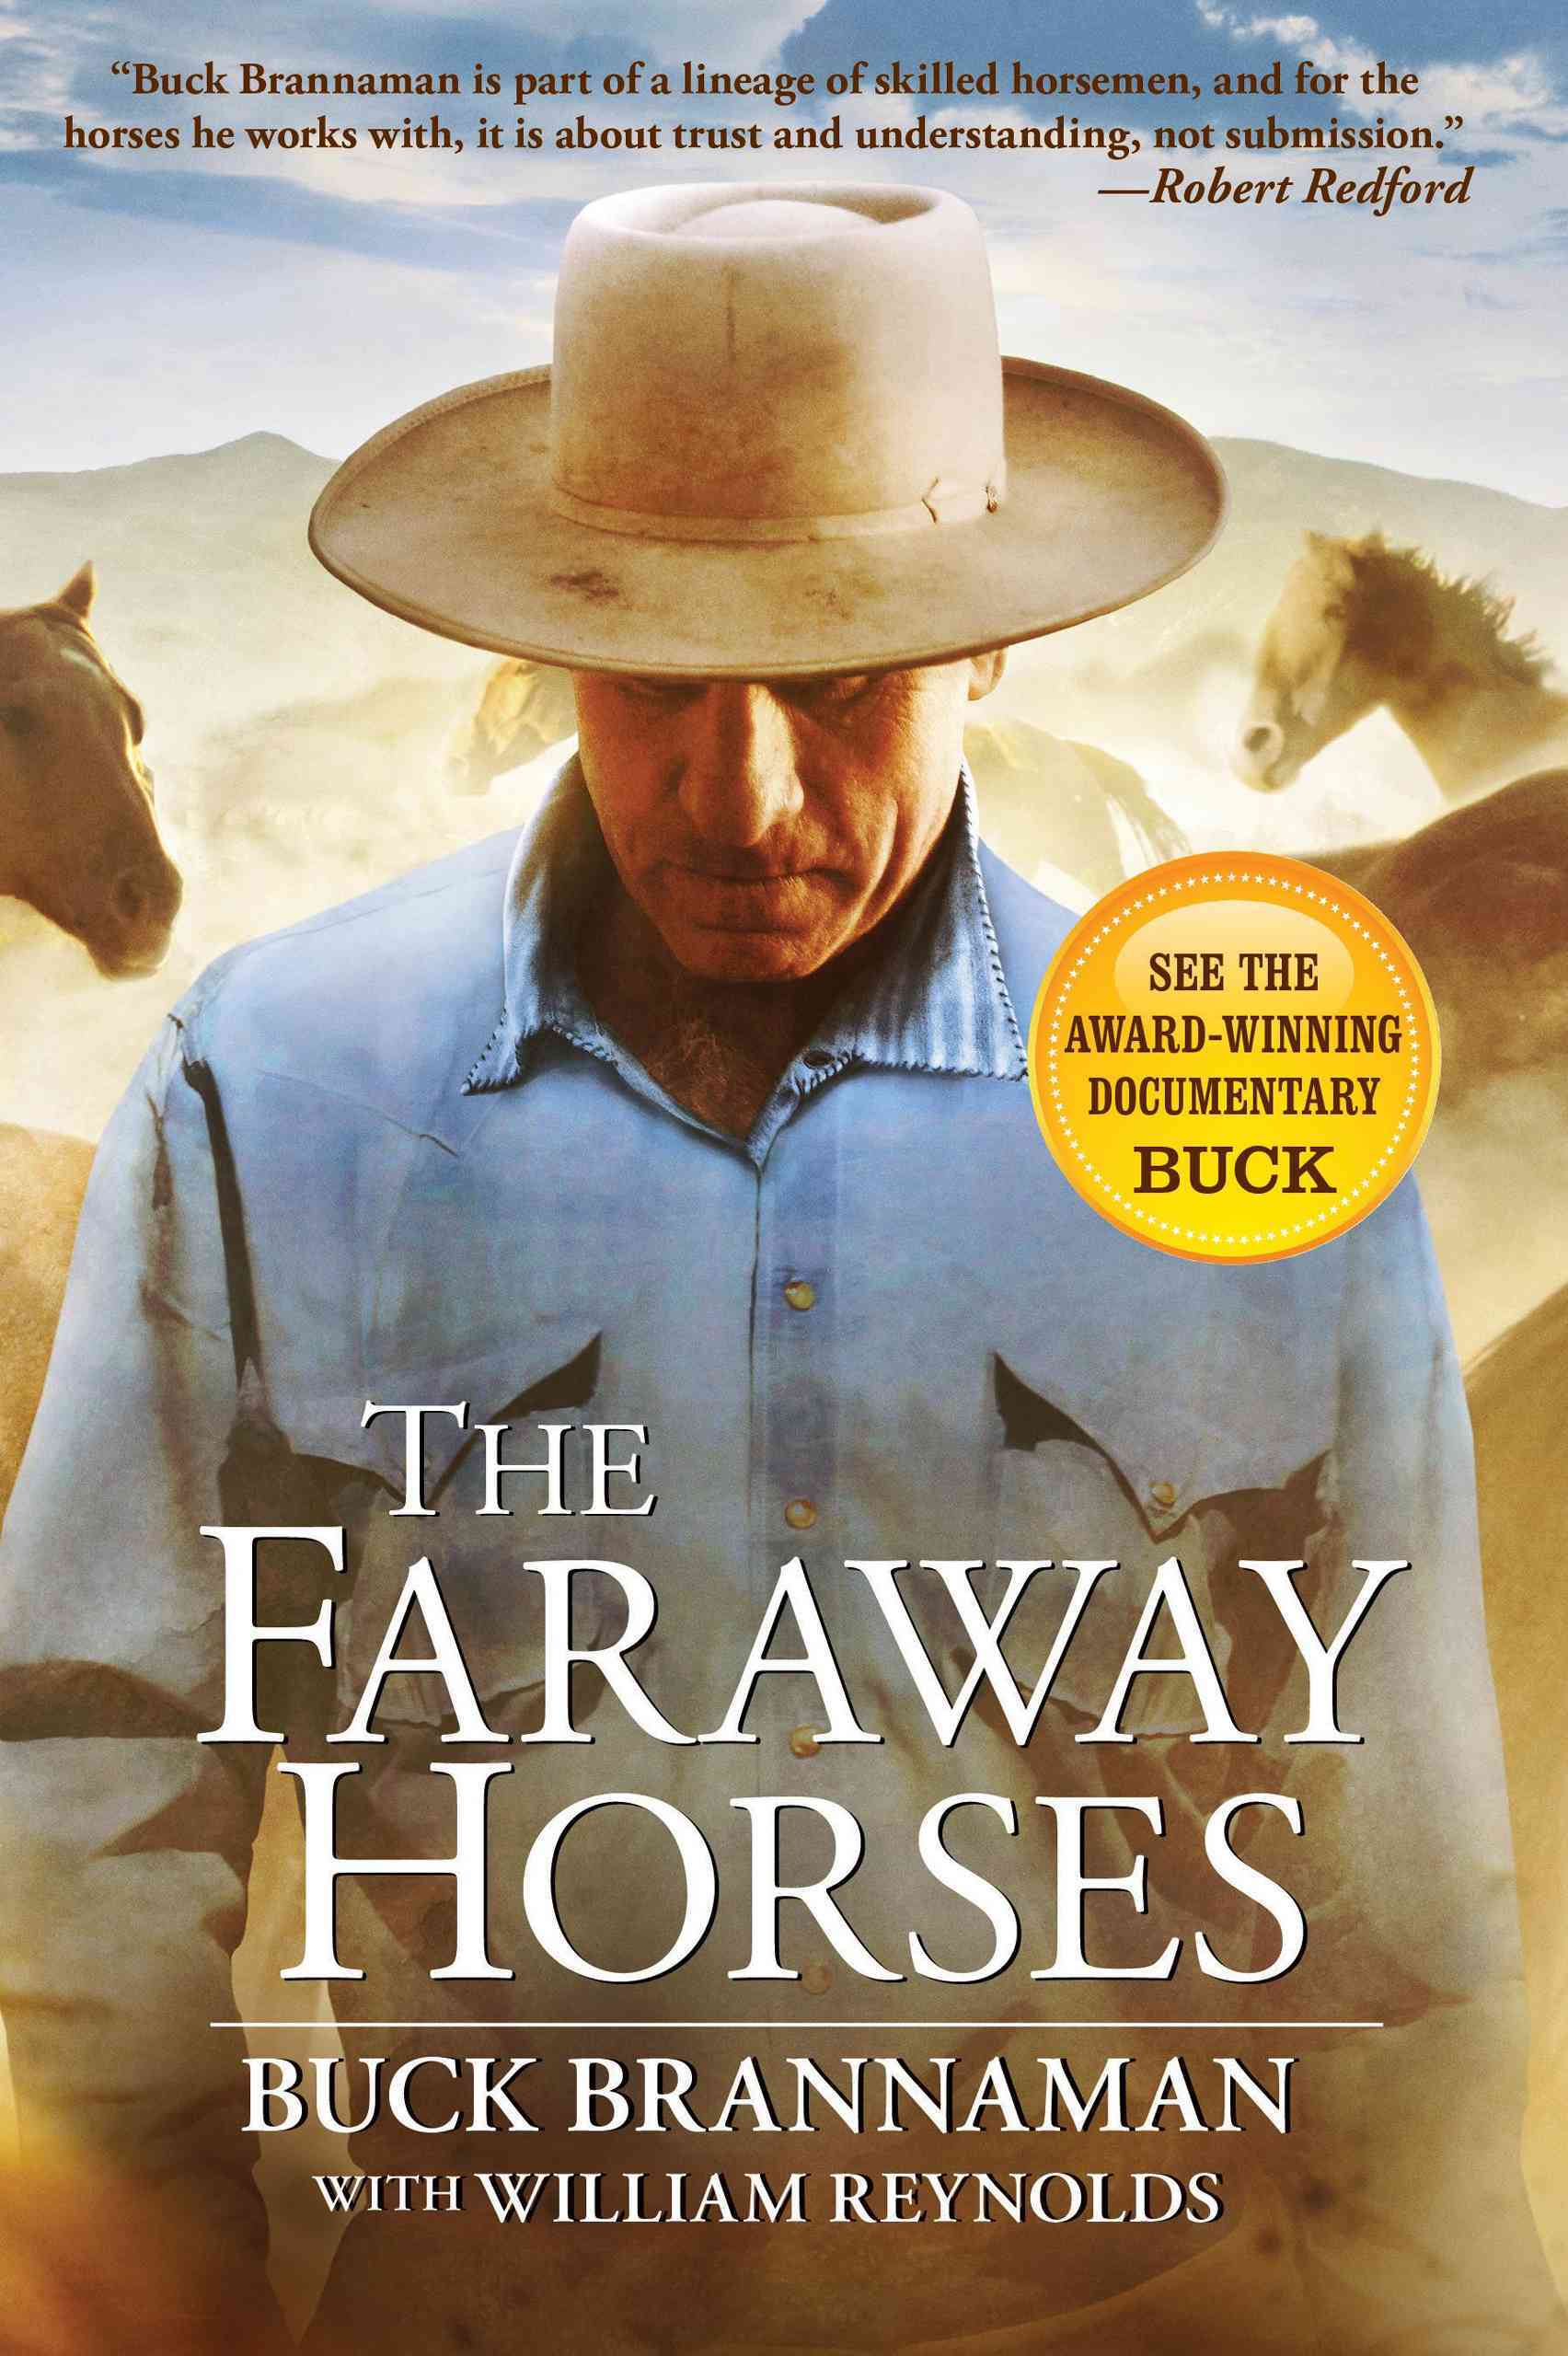 The Faraway Horses: The Adventures and Wisdom of One of America's Most Renowned Horsemen (Paperback)